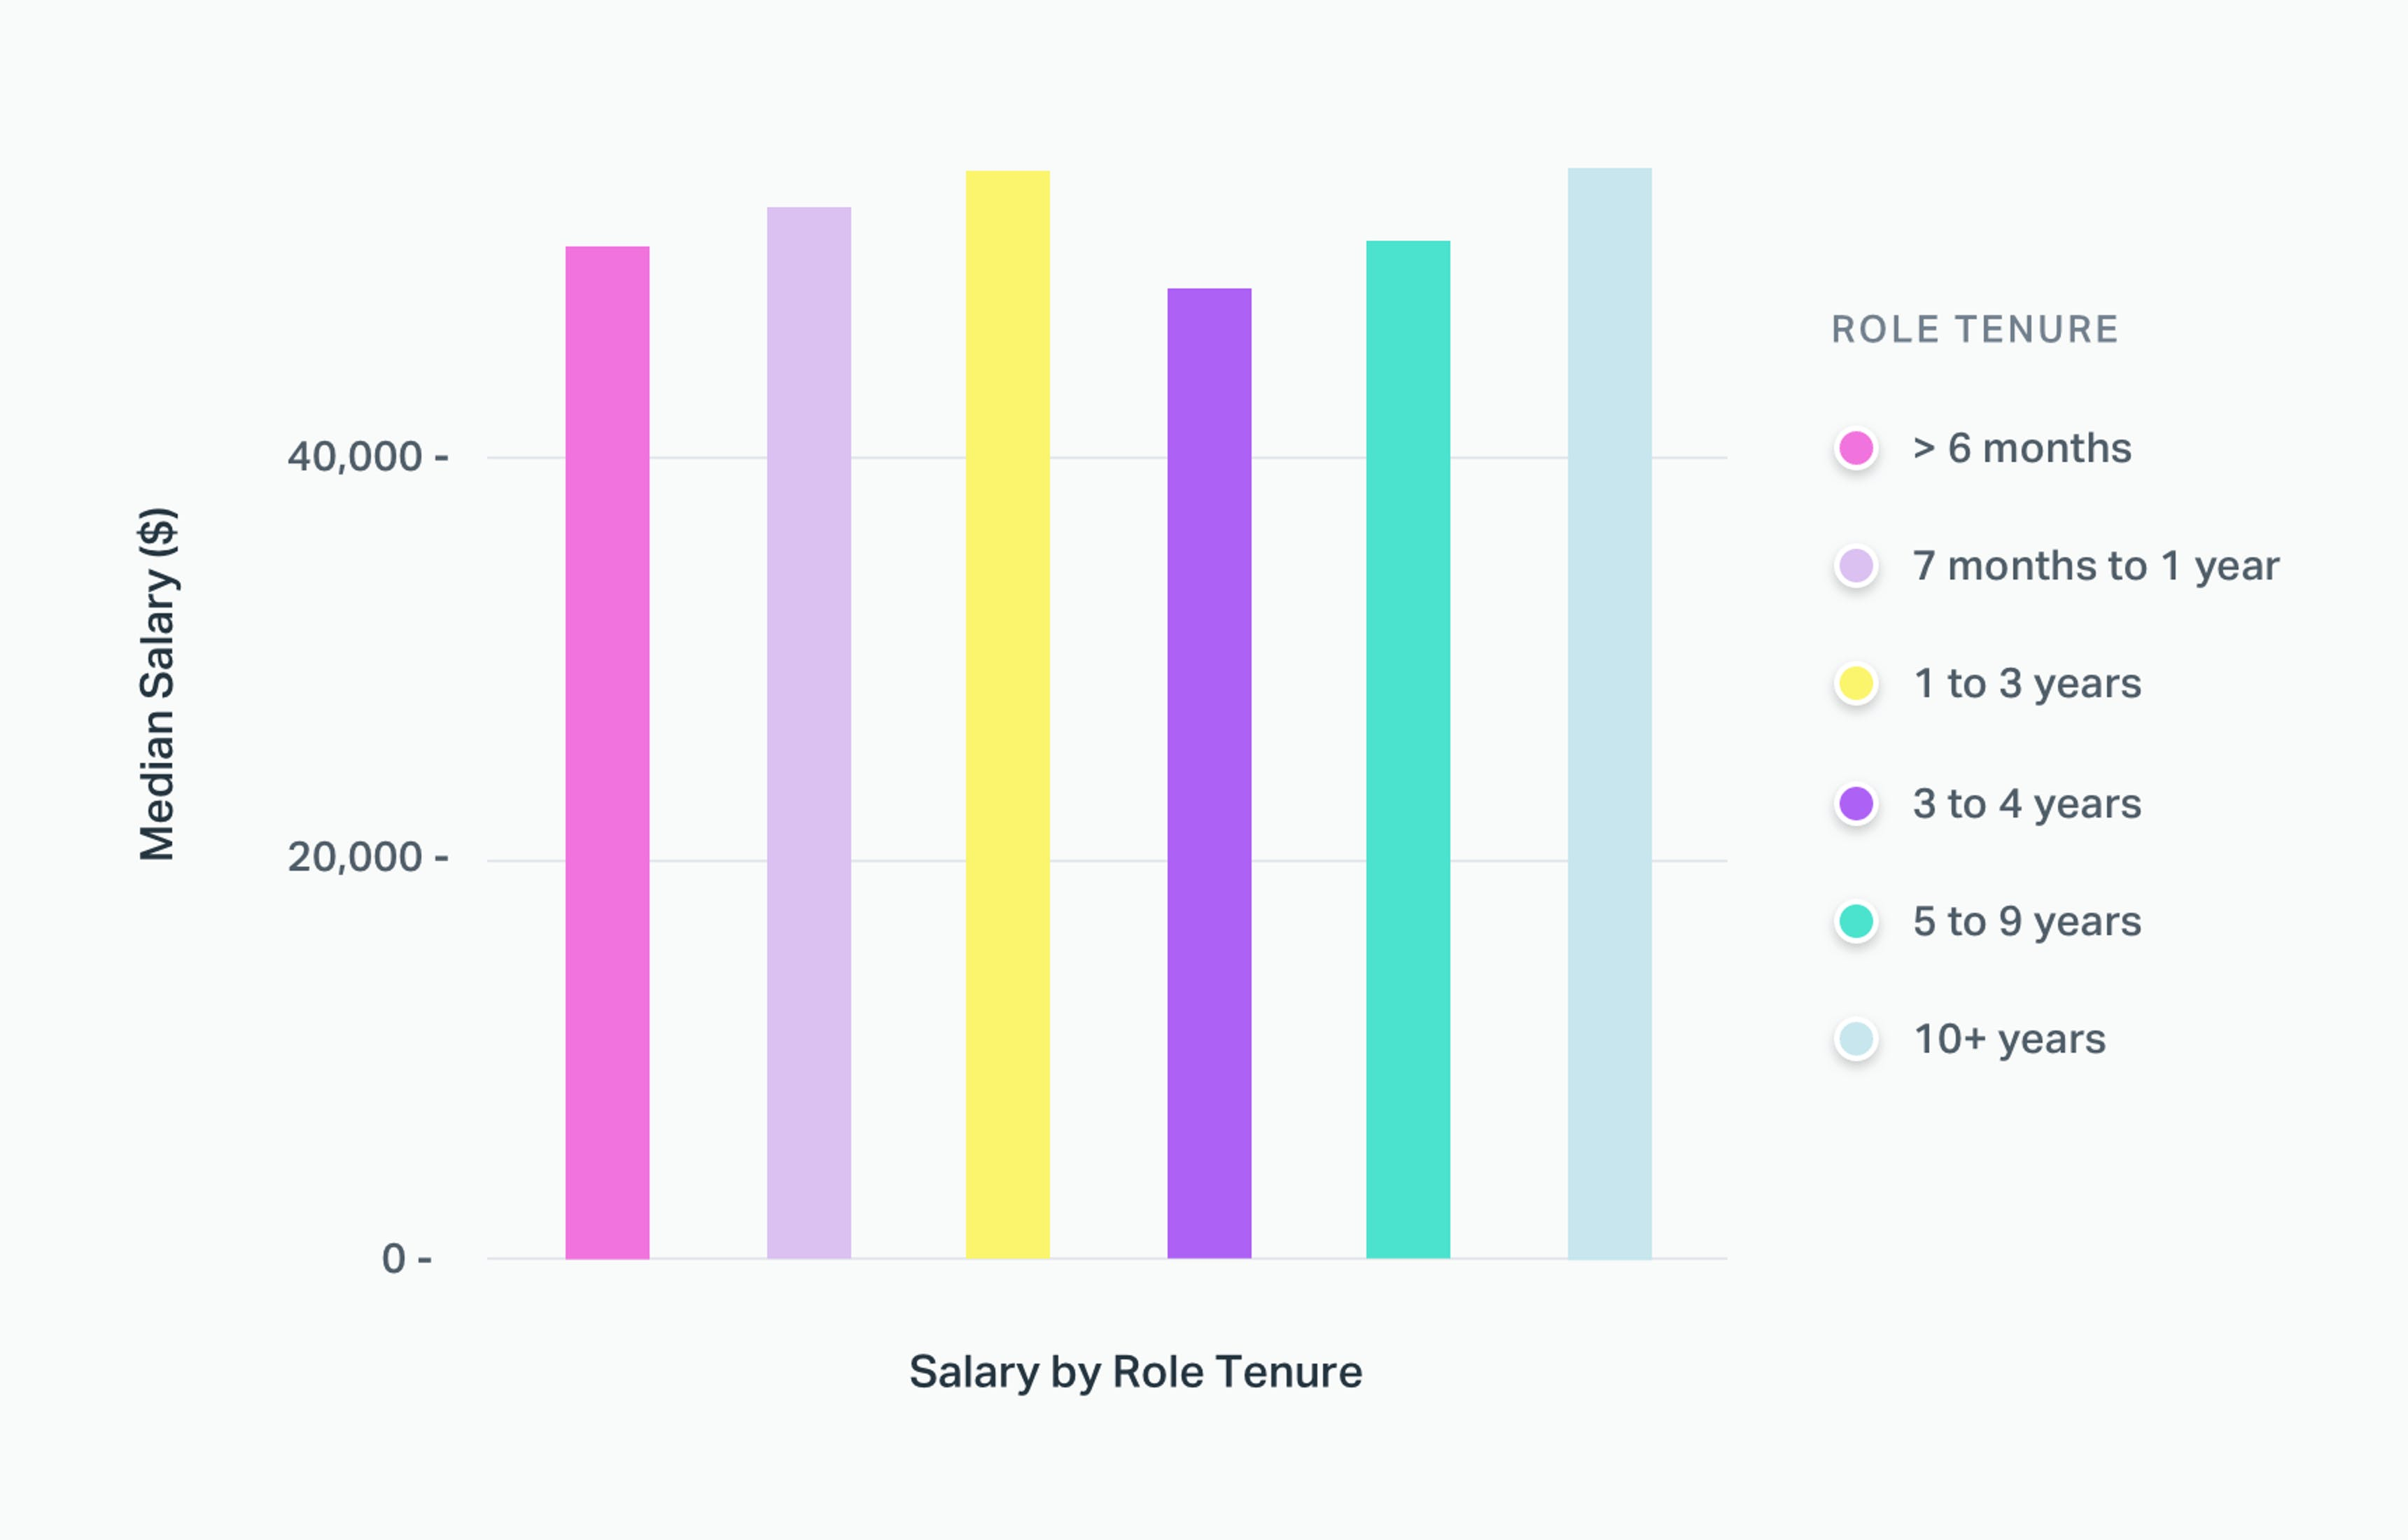 Salary by Role Tenure